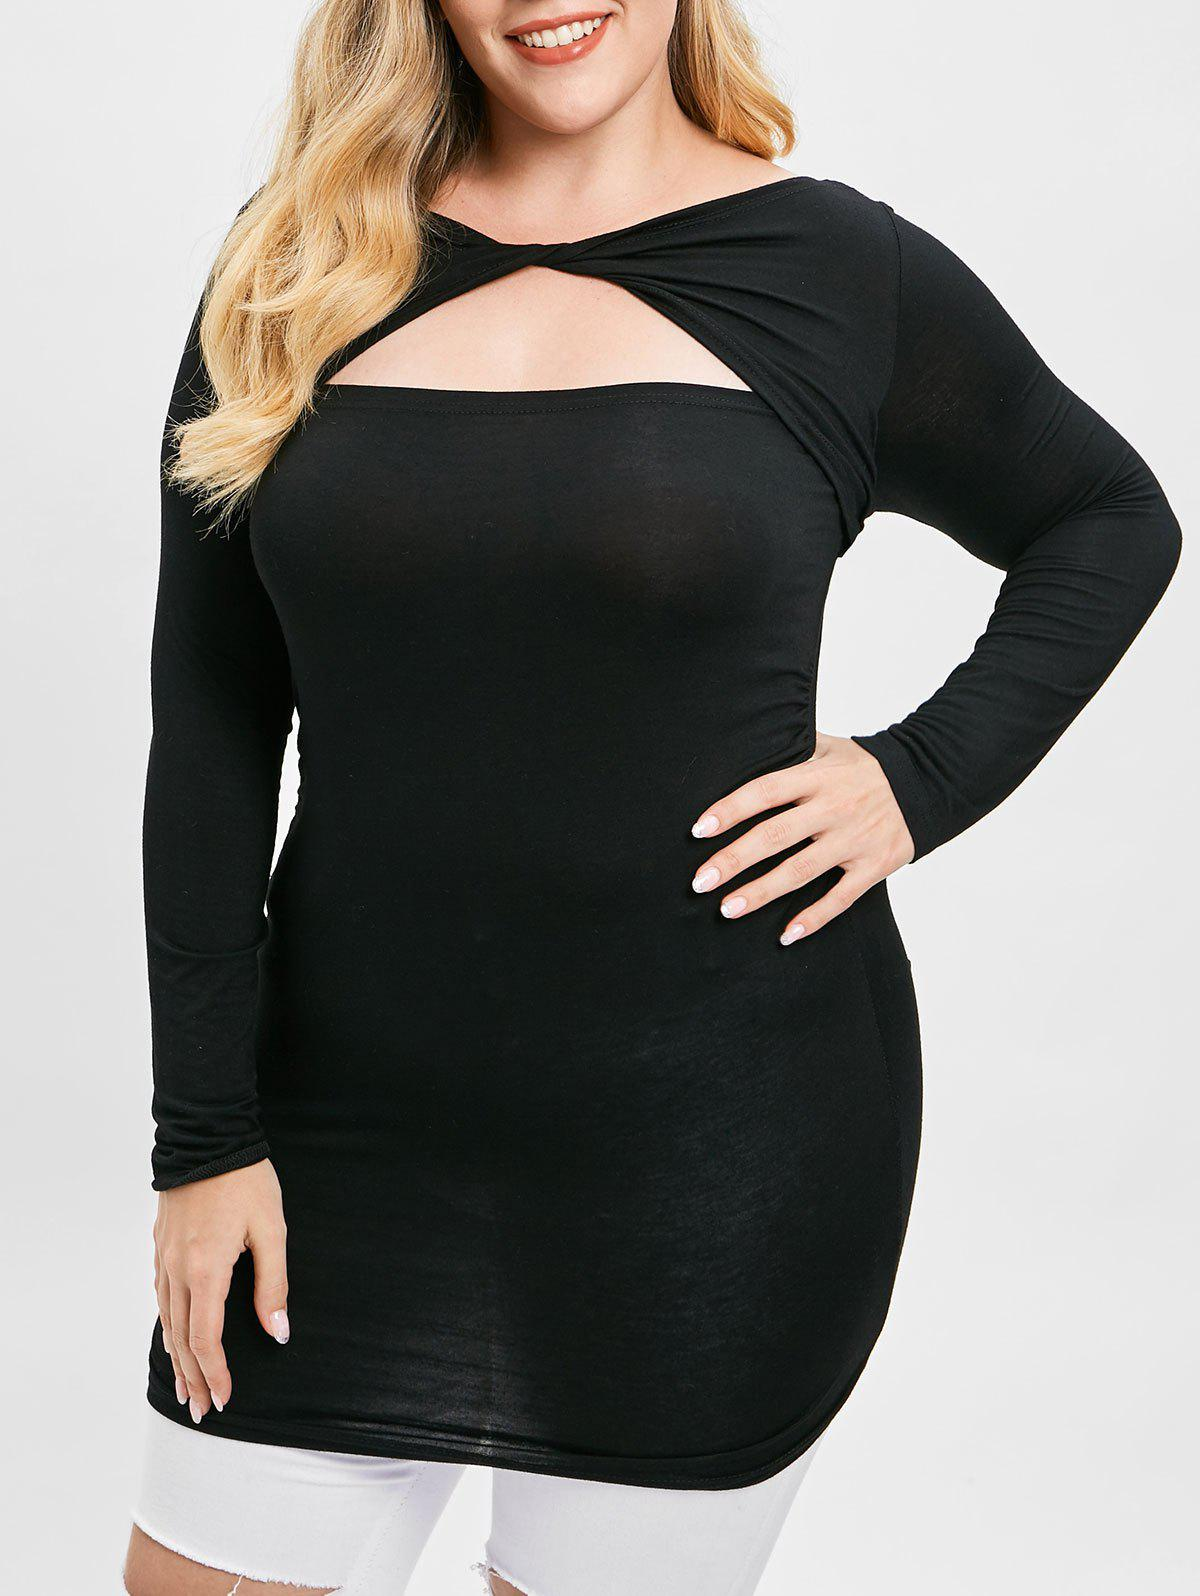 Chic Plus Size Ruffles Twisted Front Cut Out T-shirt